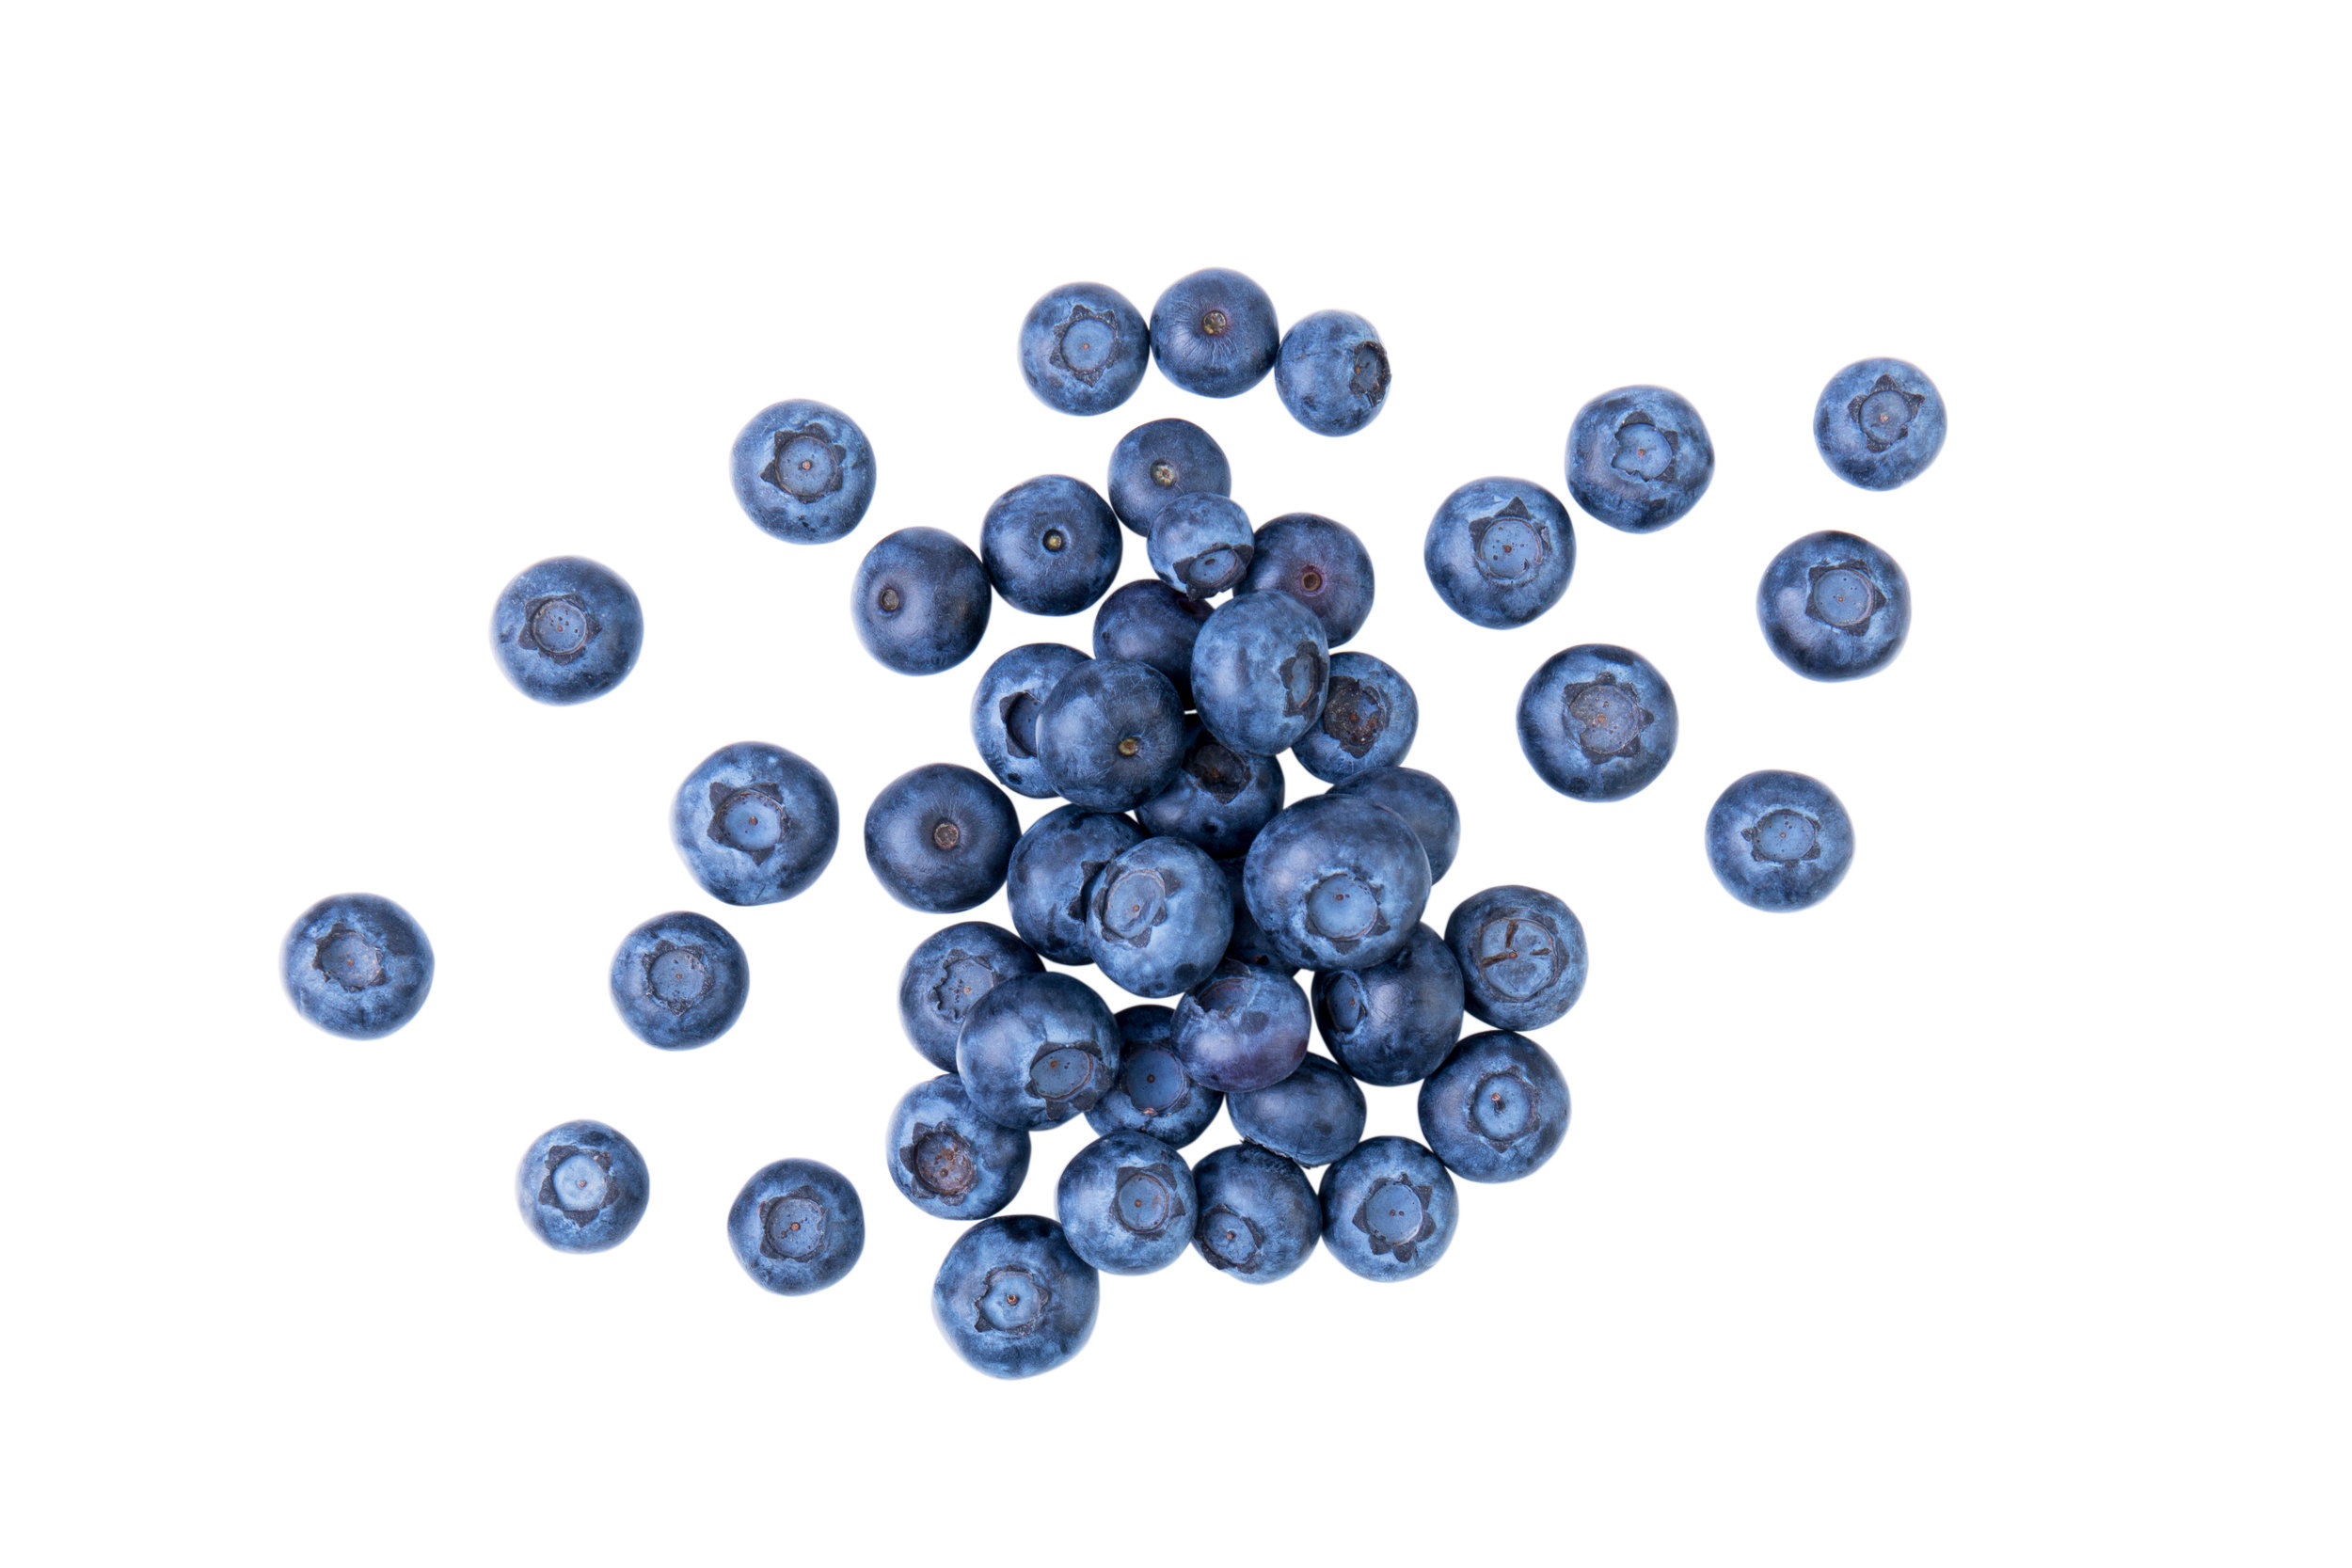 - Blueberry extract one of the richest antioxidants. It includes anthocyanins, a class of compounds that reduces inflammation and protect against heart disease and cancer.